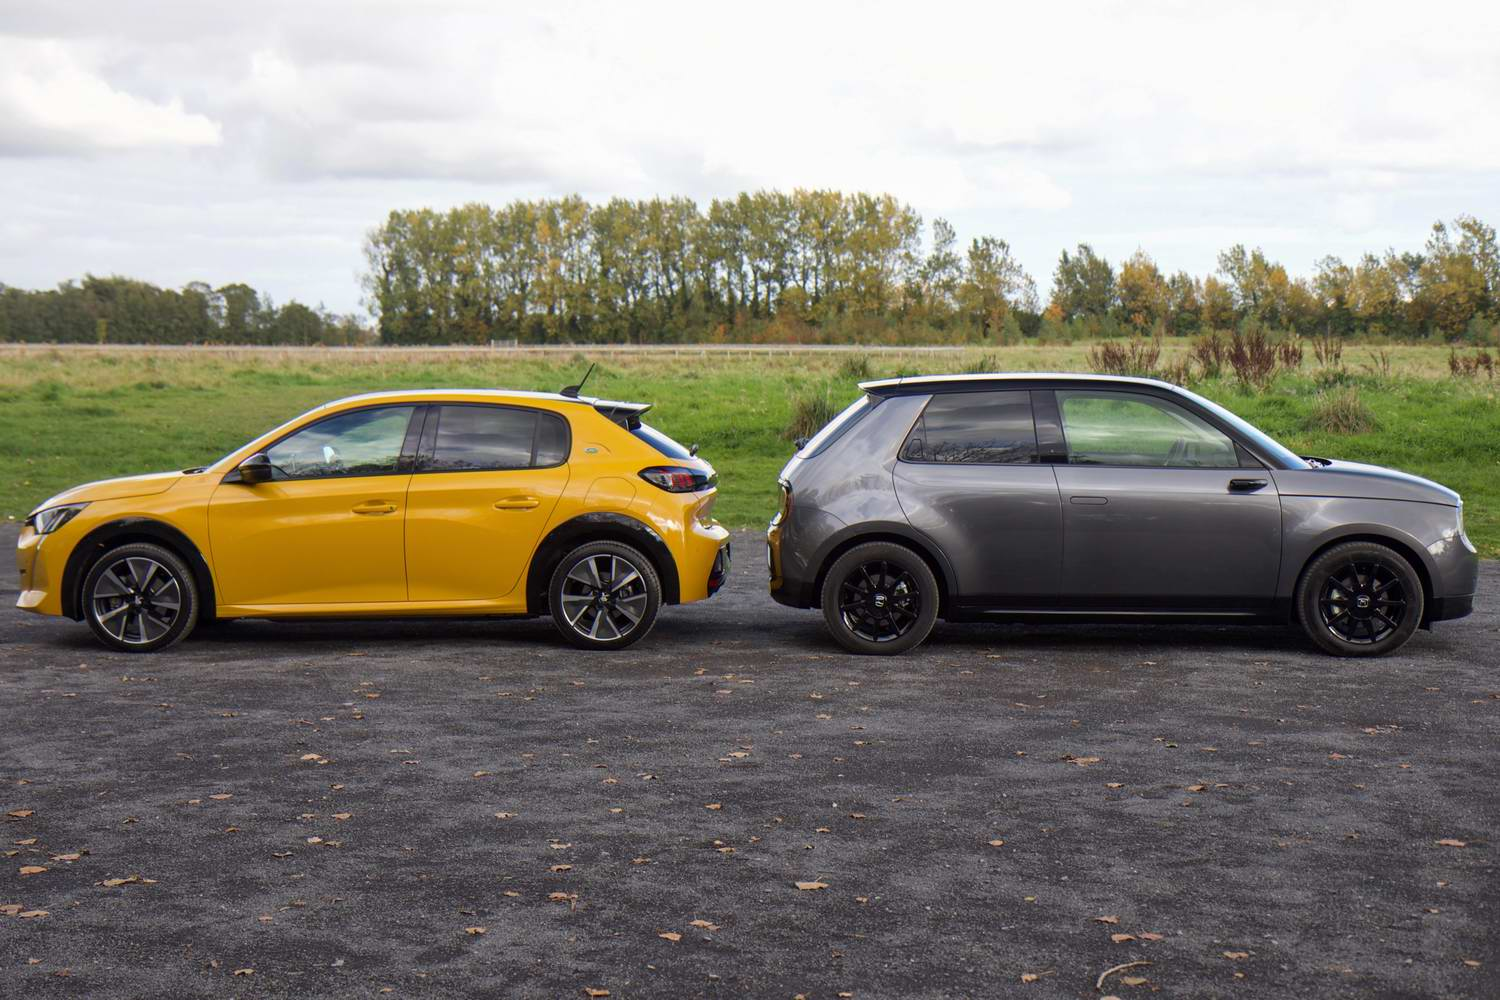 Honda e vs. Peugeot e-208 electric car comparison